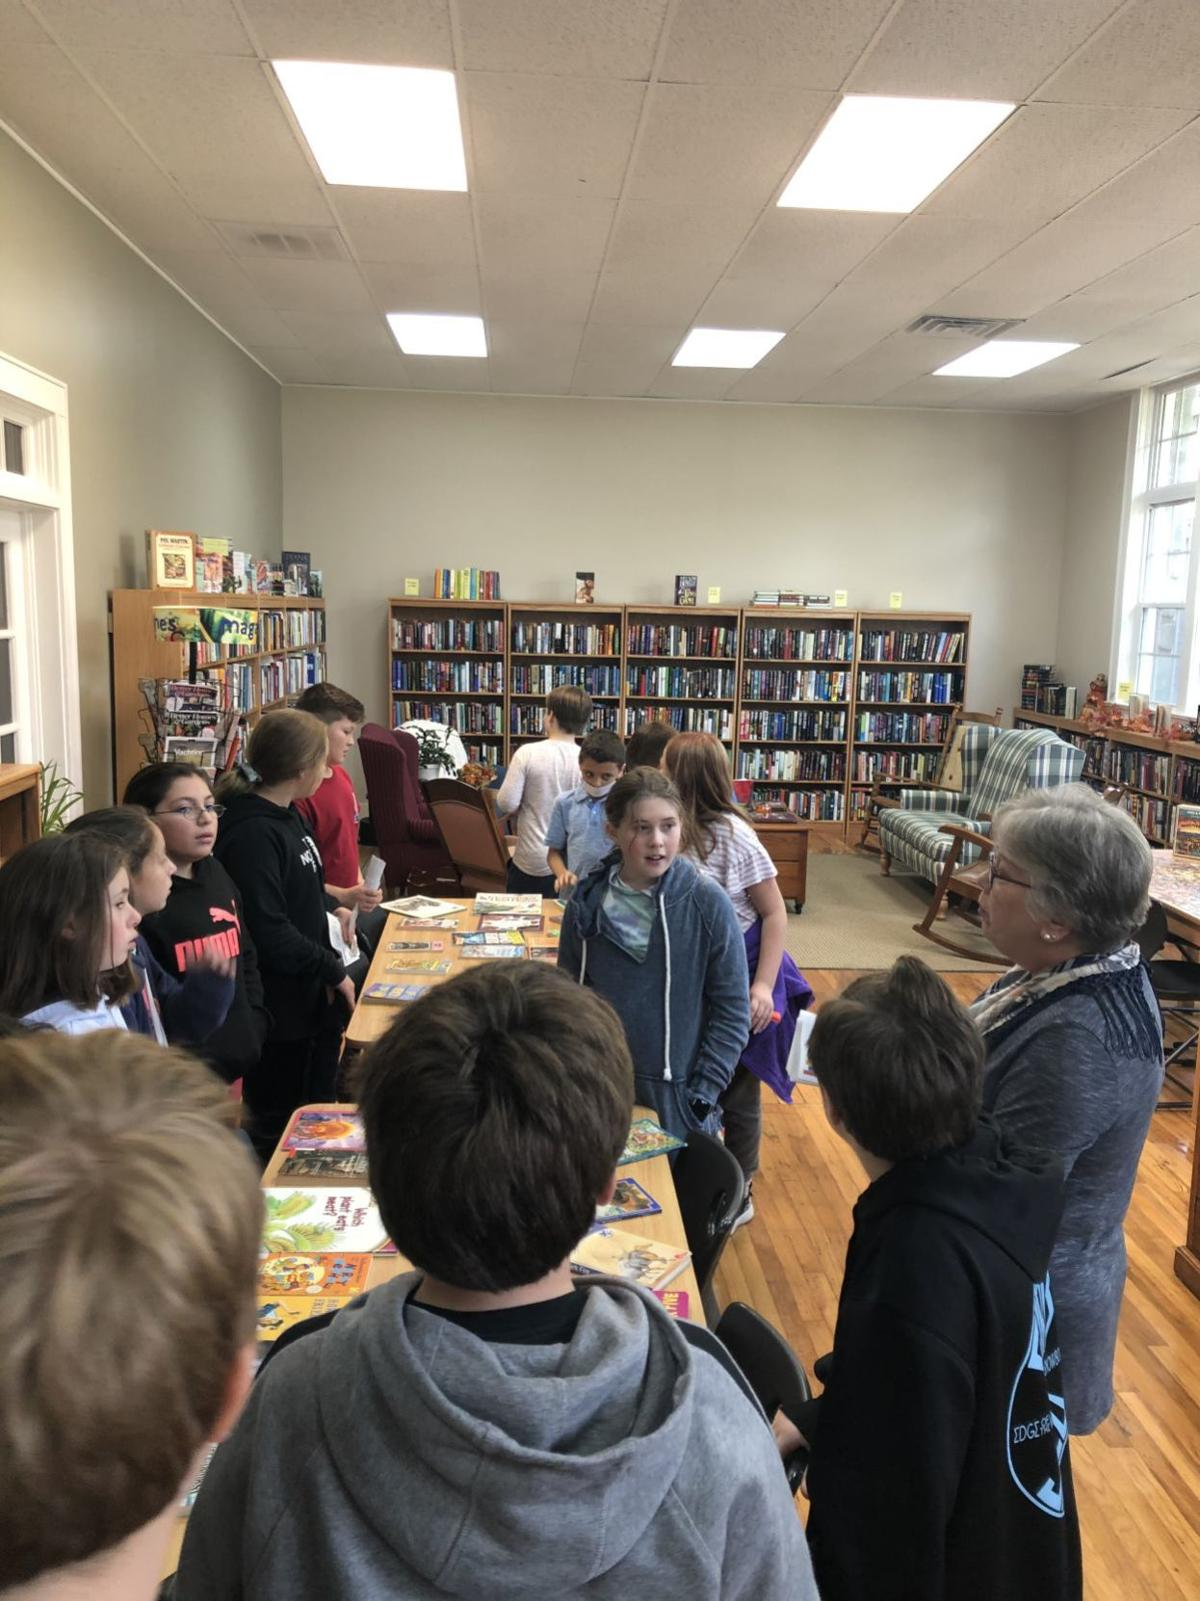 Book Exchange with kids